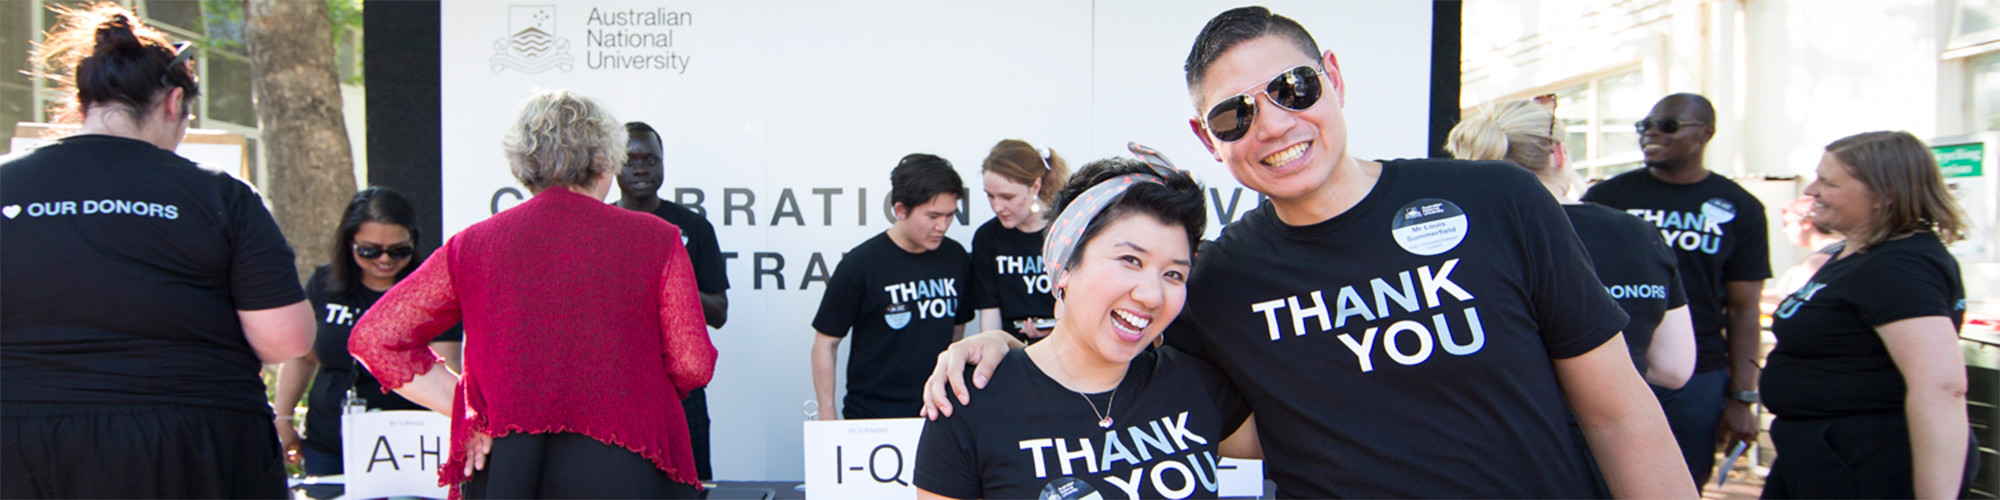 ANU staff at a donor event, wearing Thank You t-shirts